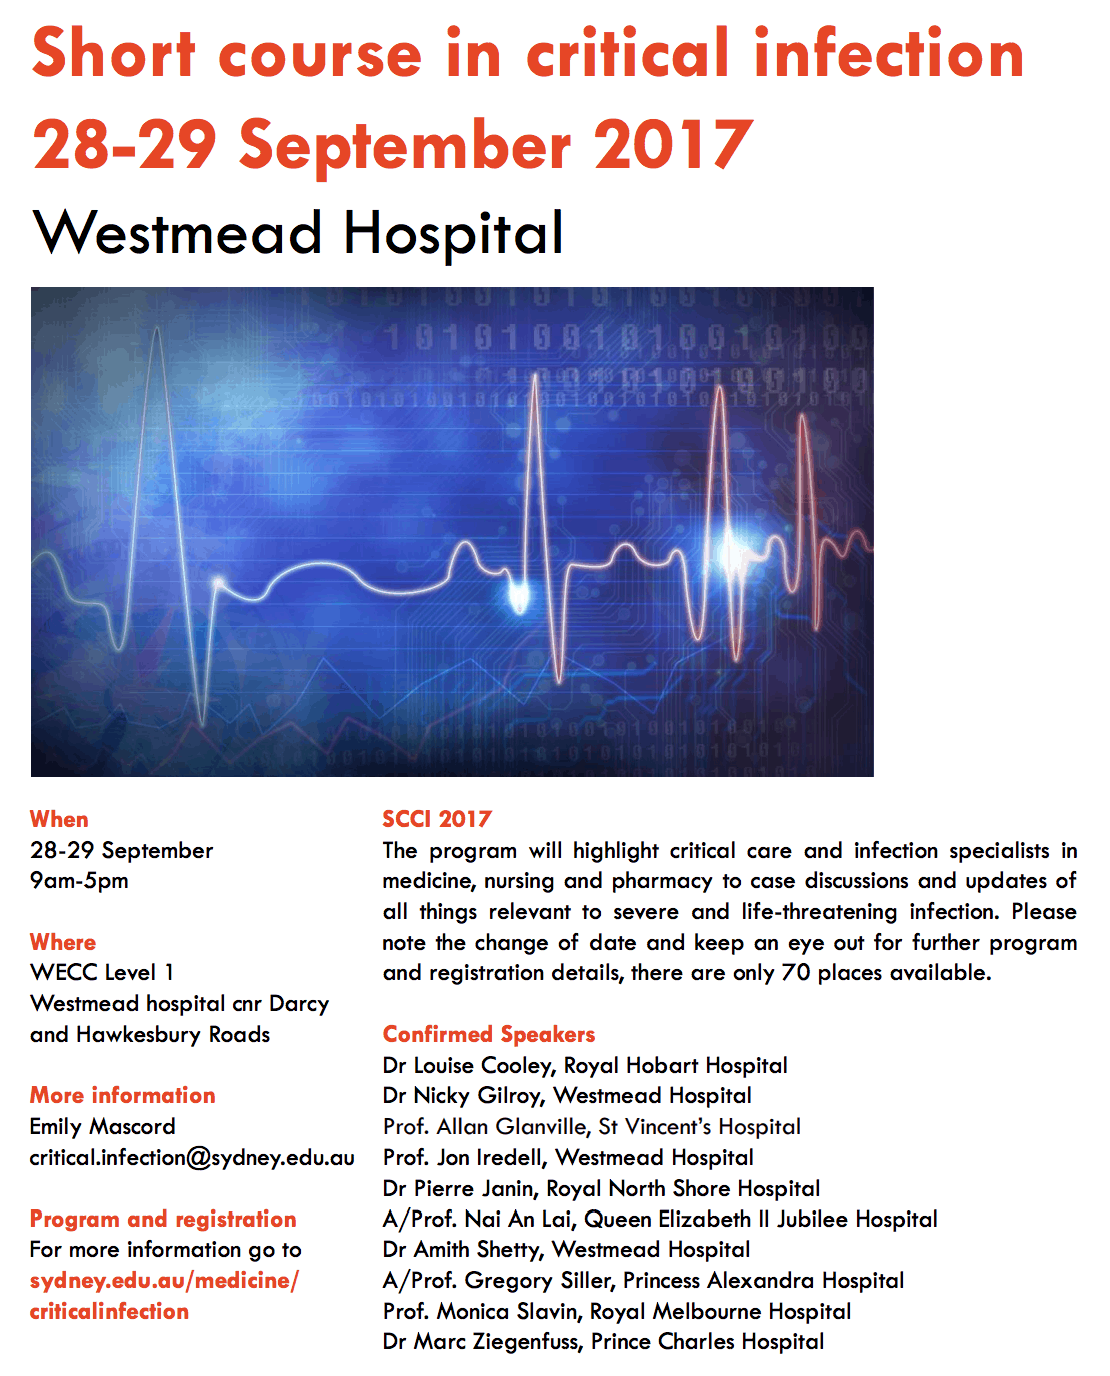 Short course in critical infection - Intensive Care Network